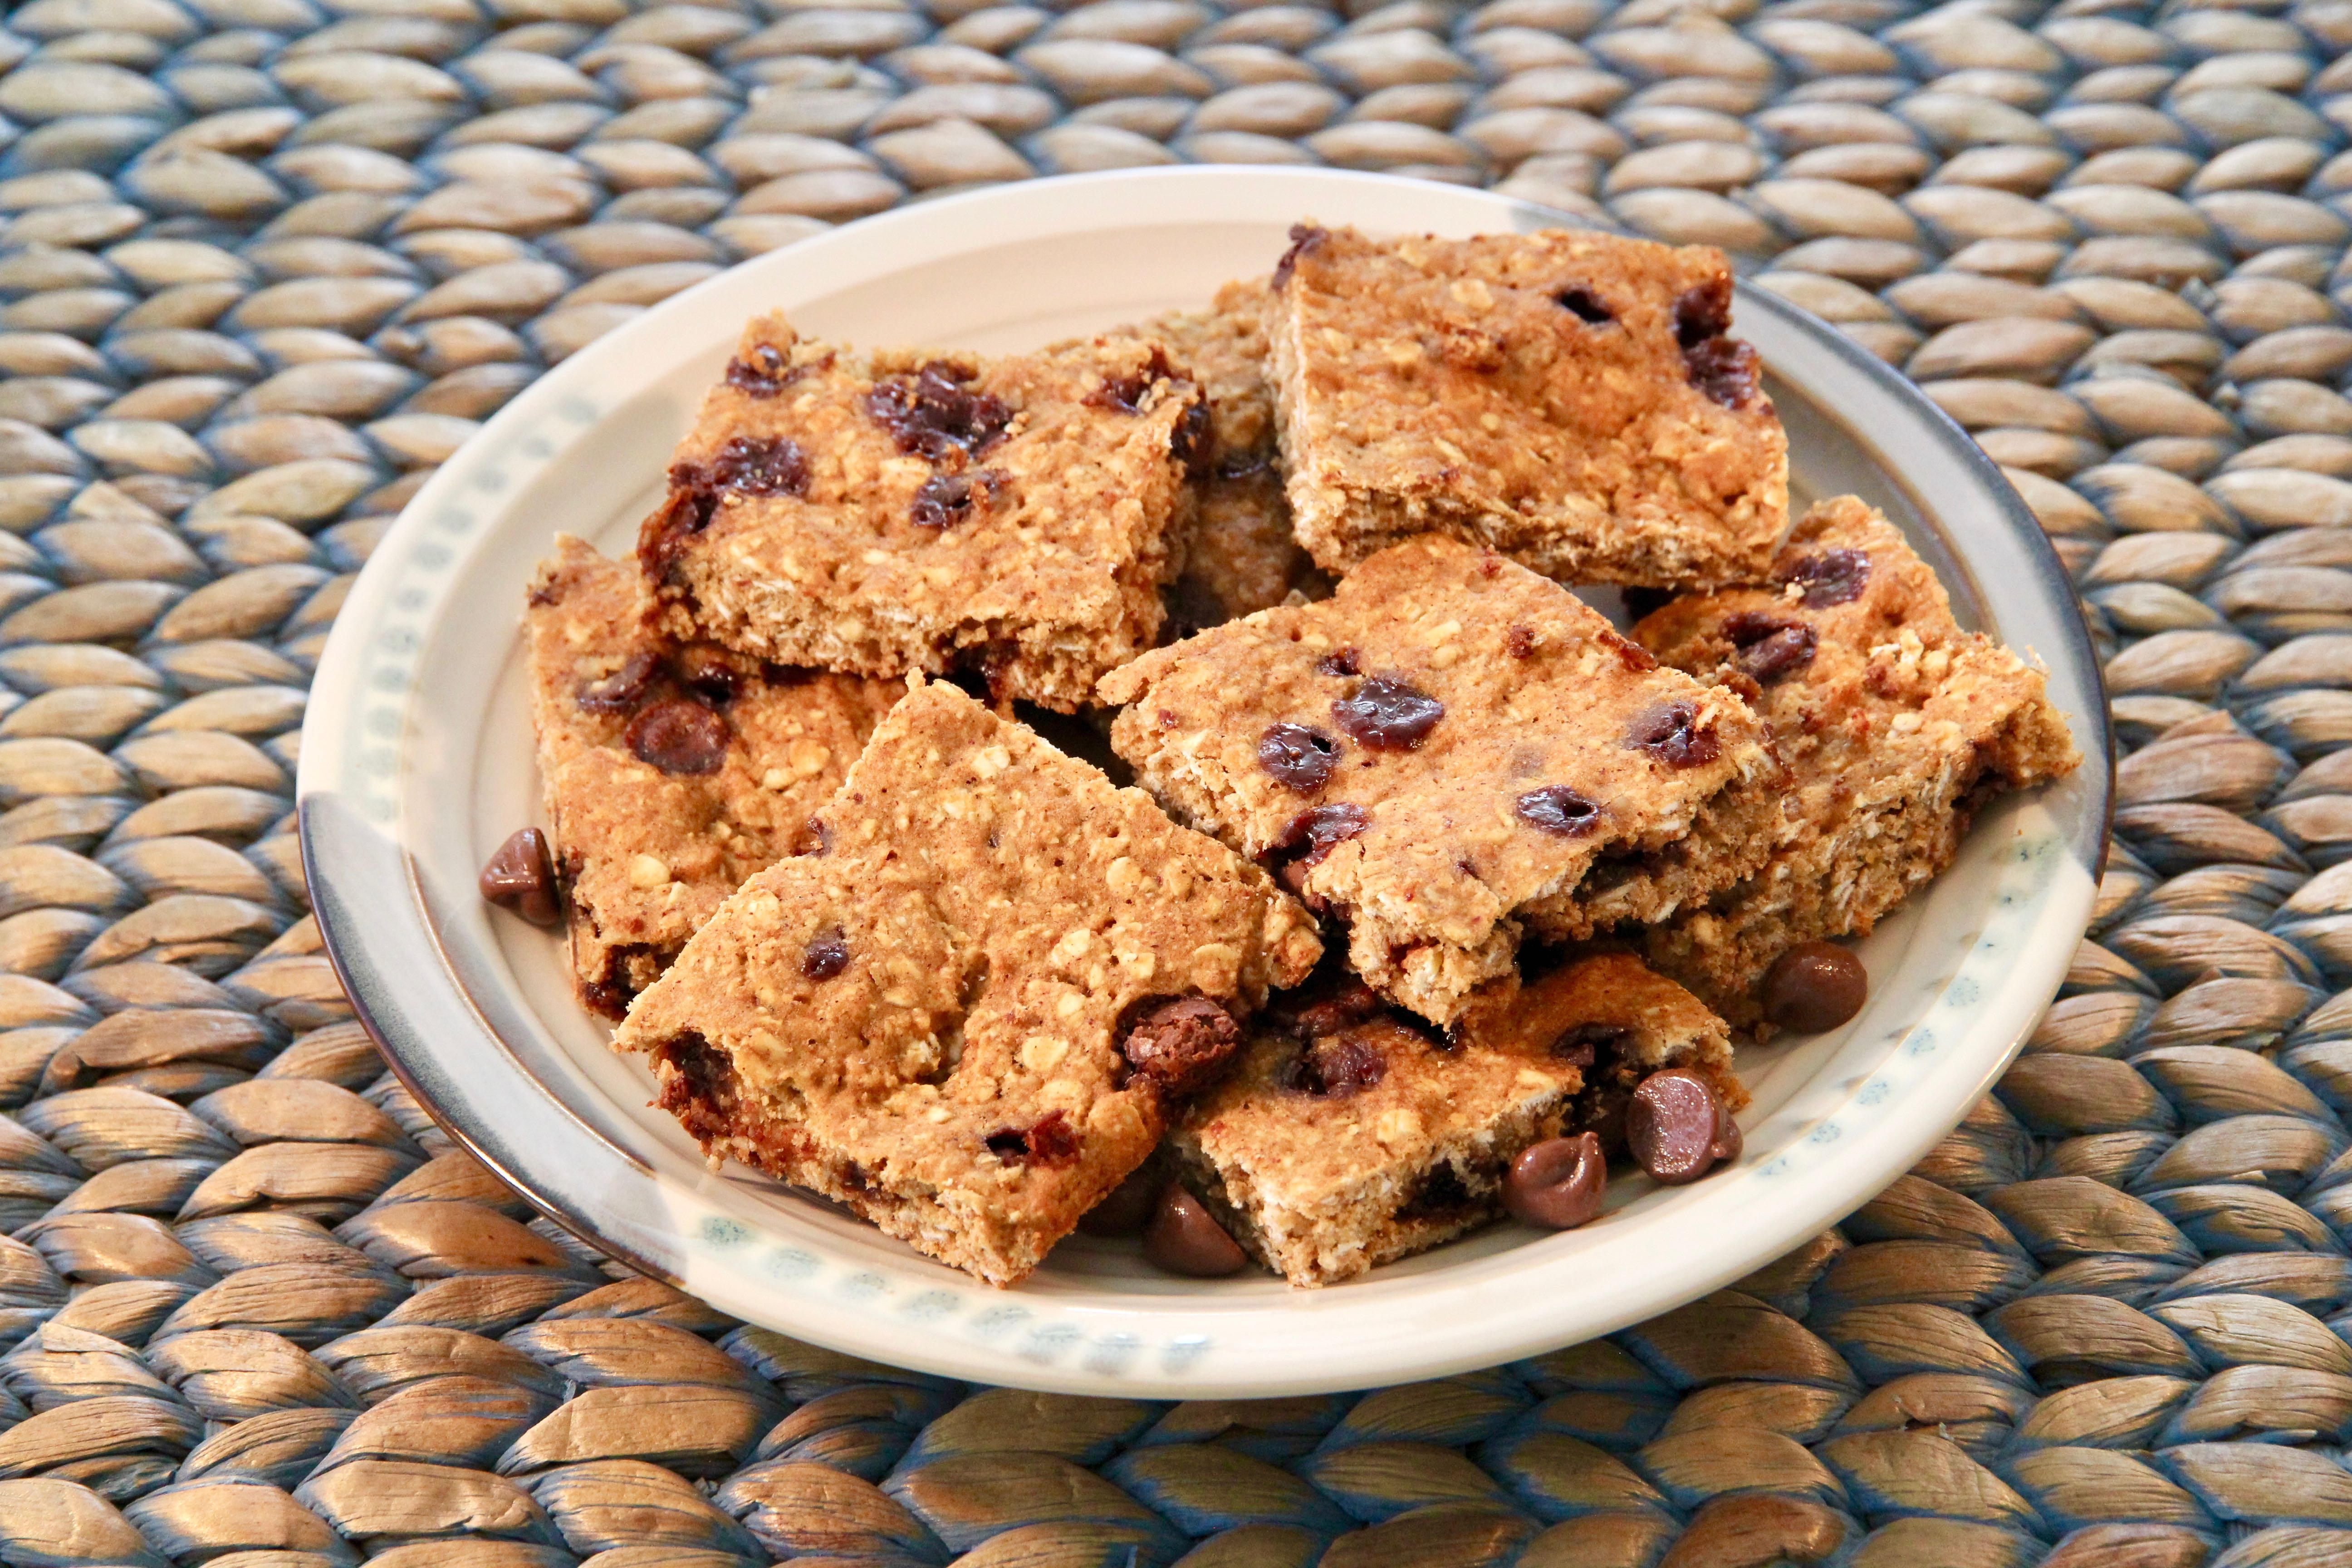 Oatmeal Chocolate Chip Snack Bars